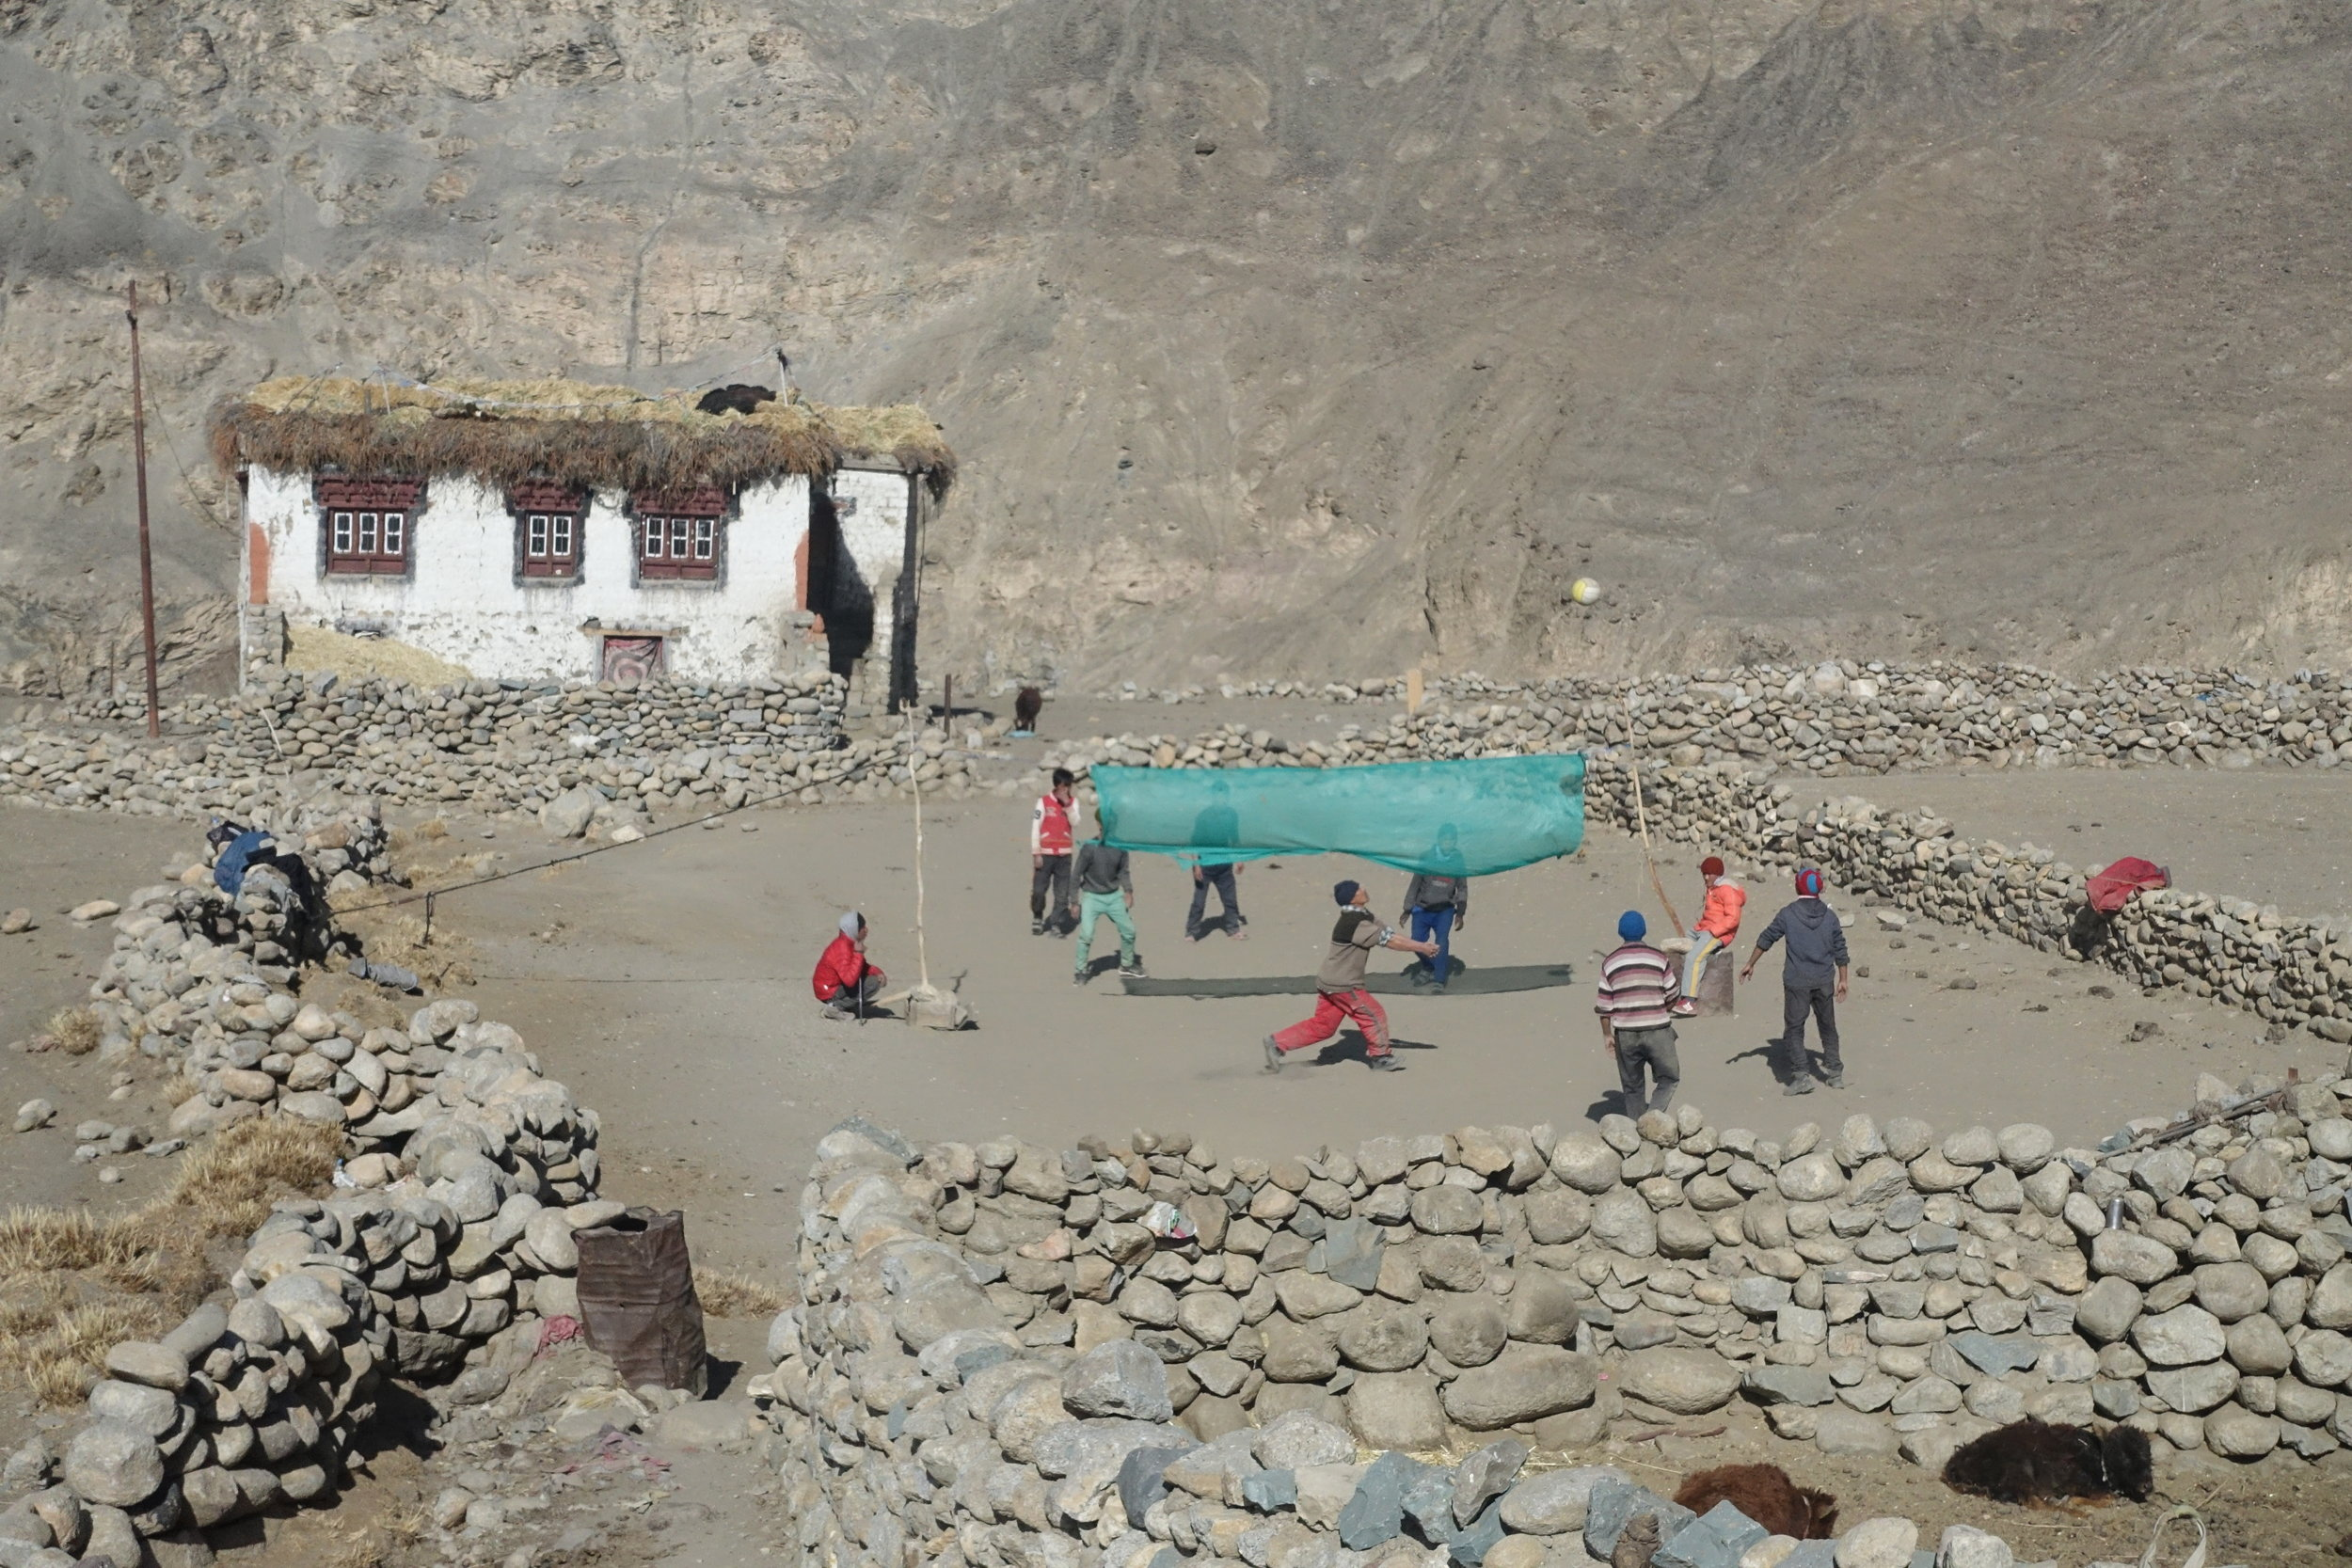 Outdoor games in the small village of Gya, which will host the forthcoming sustainability winter school